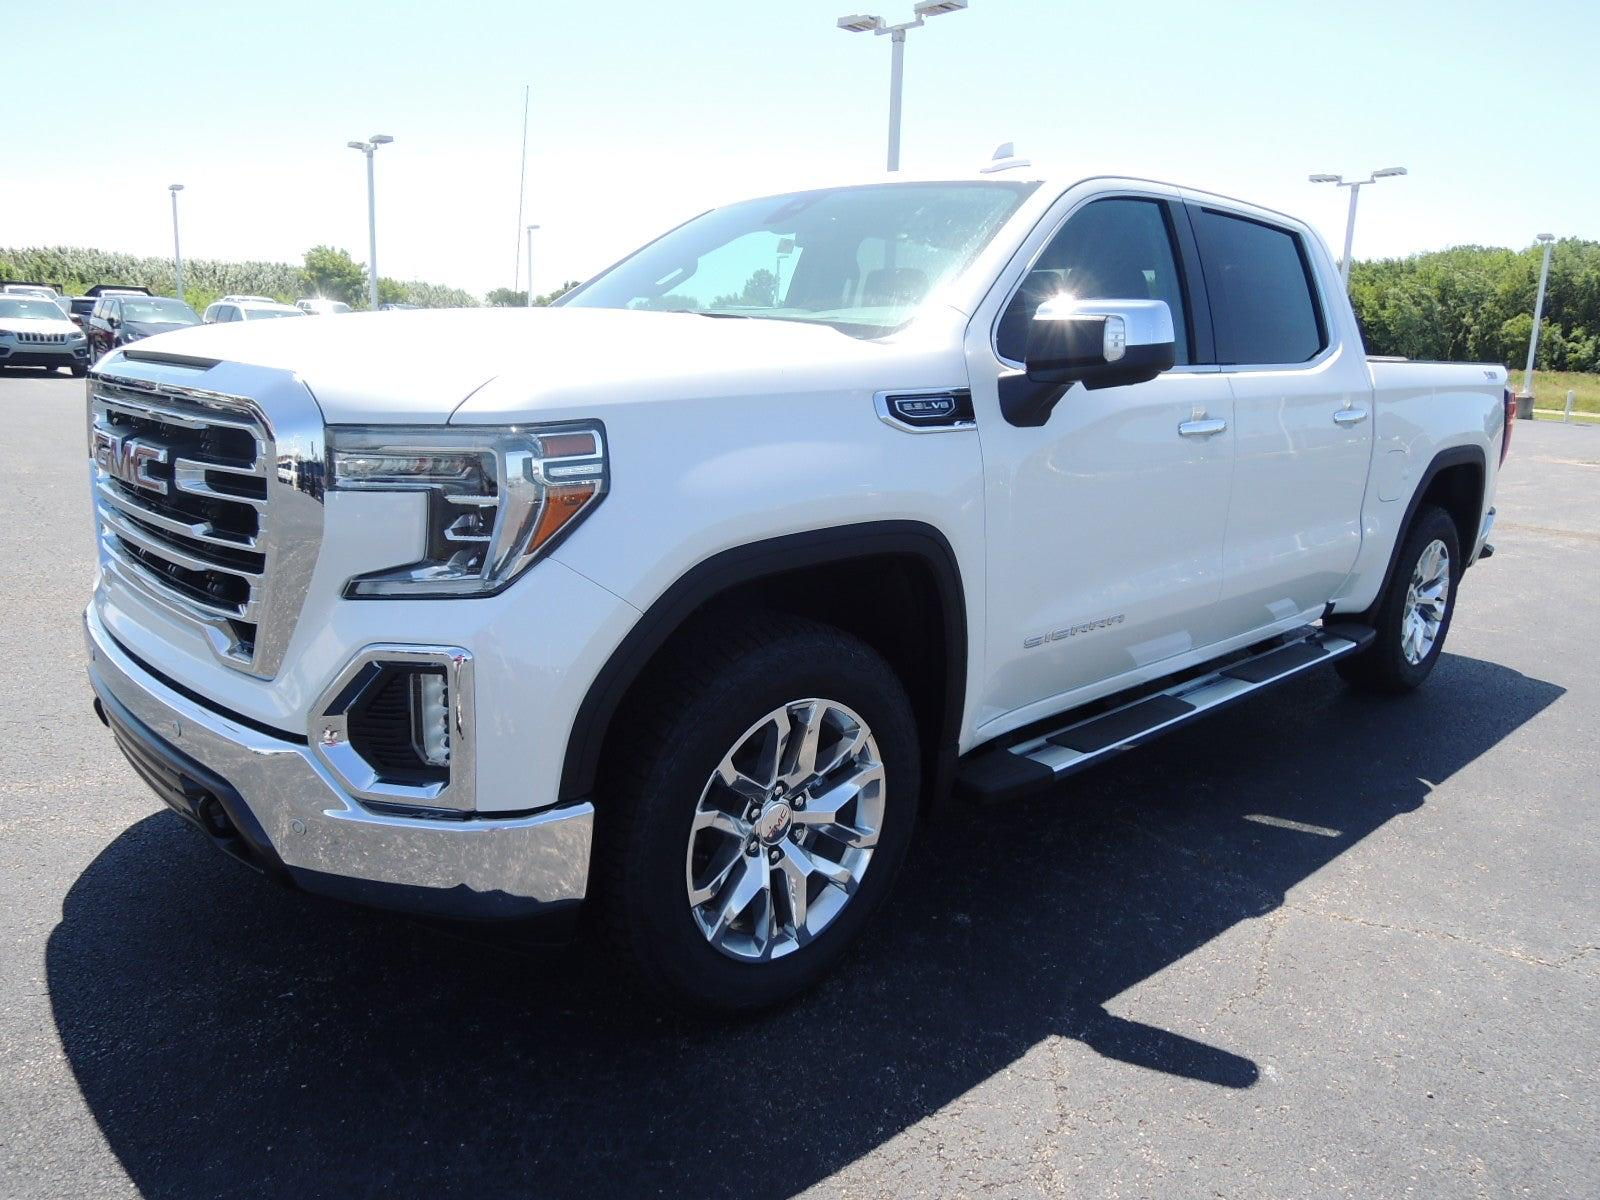 2021 GMC Sierra 1500 Crew Cab 4x4, Pickup #MT217 - photo 6